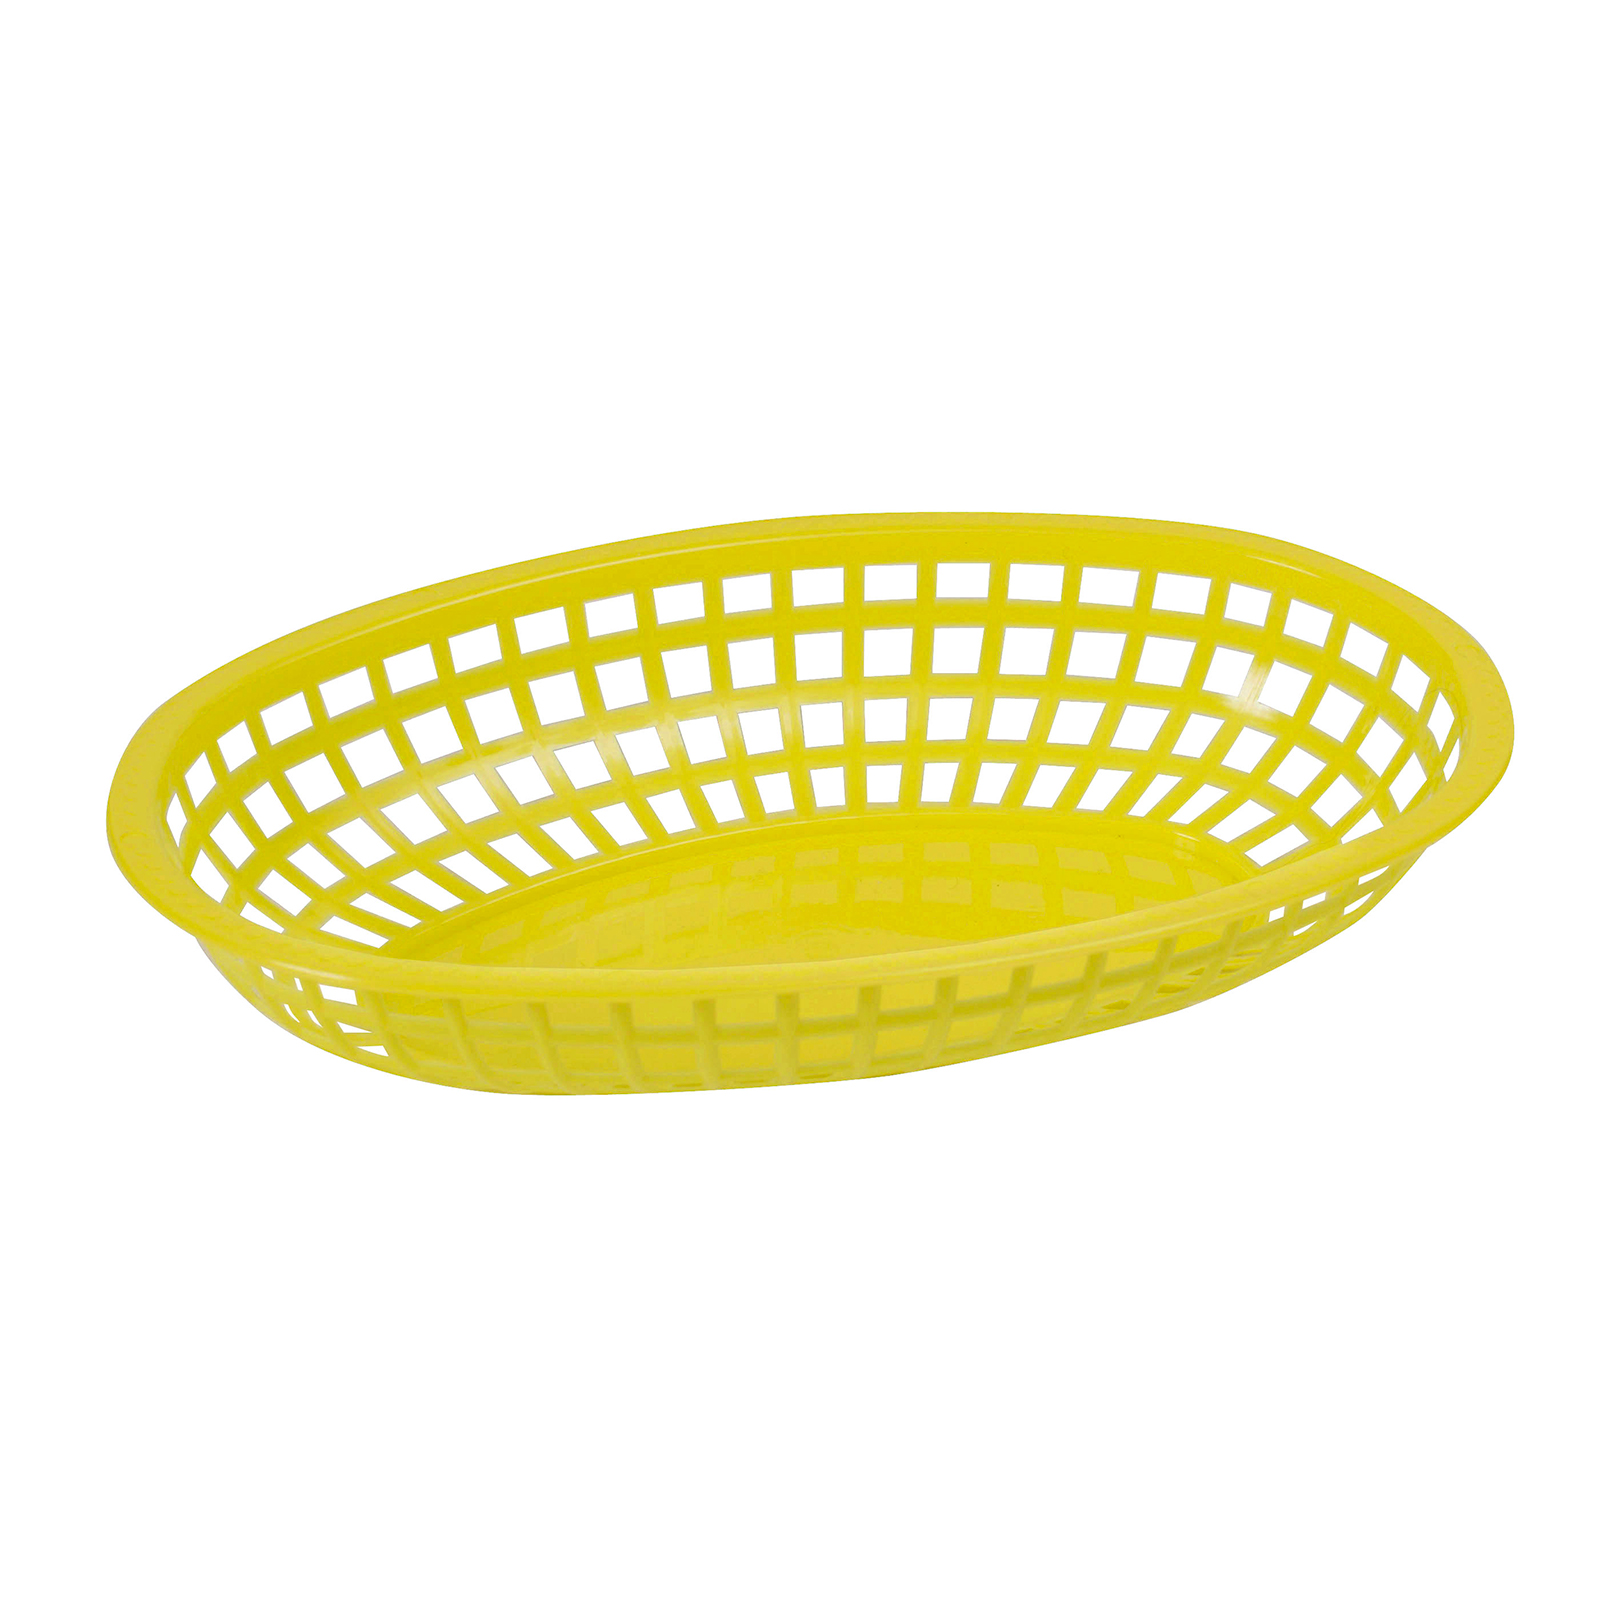 Winco POB-Y basket, fast food